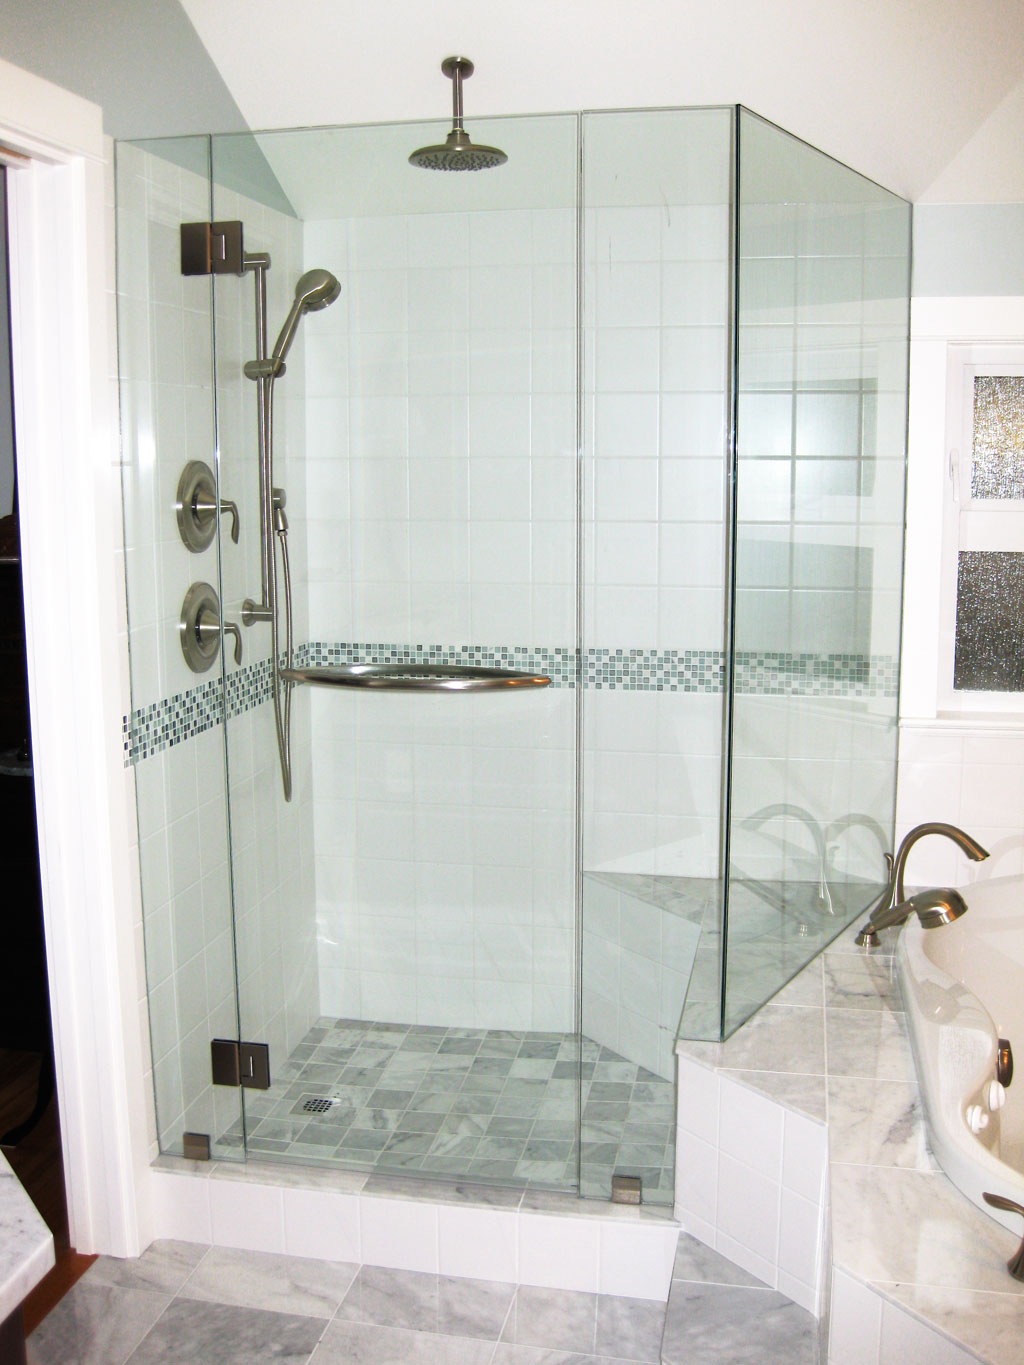 20 modern bathrooms with glass showers On glass bathroom